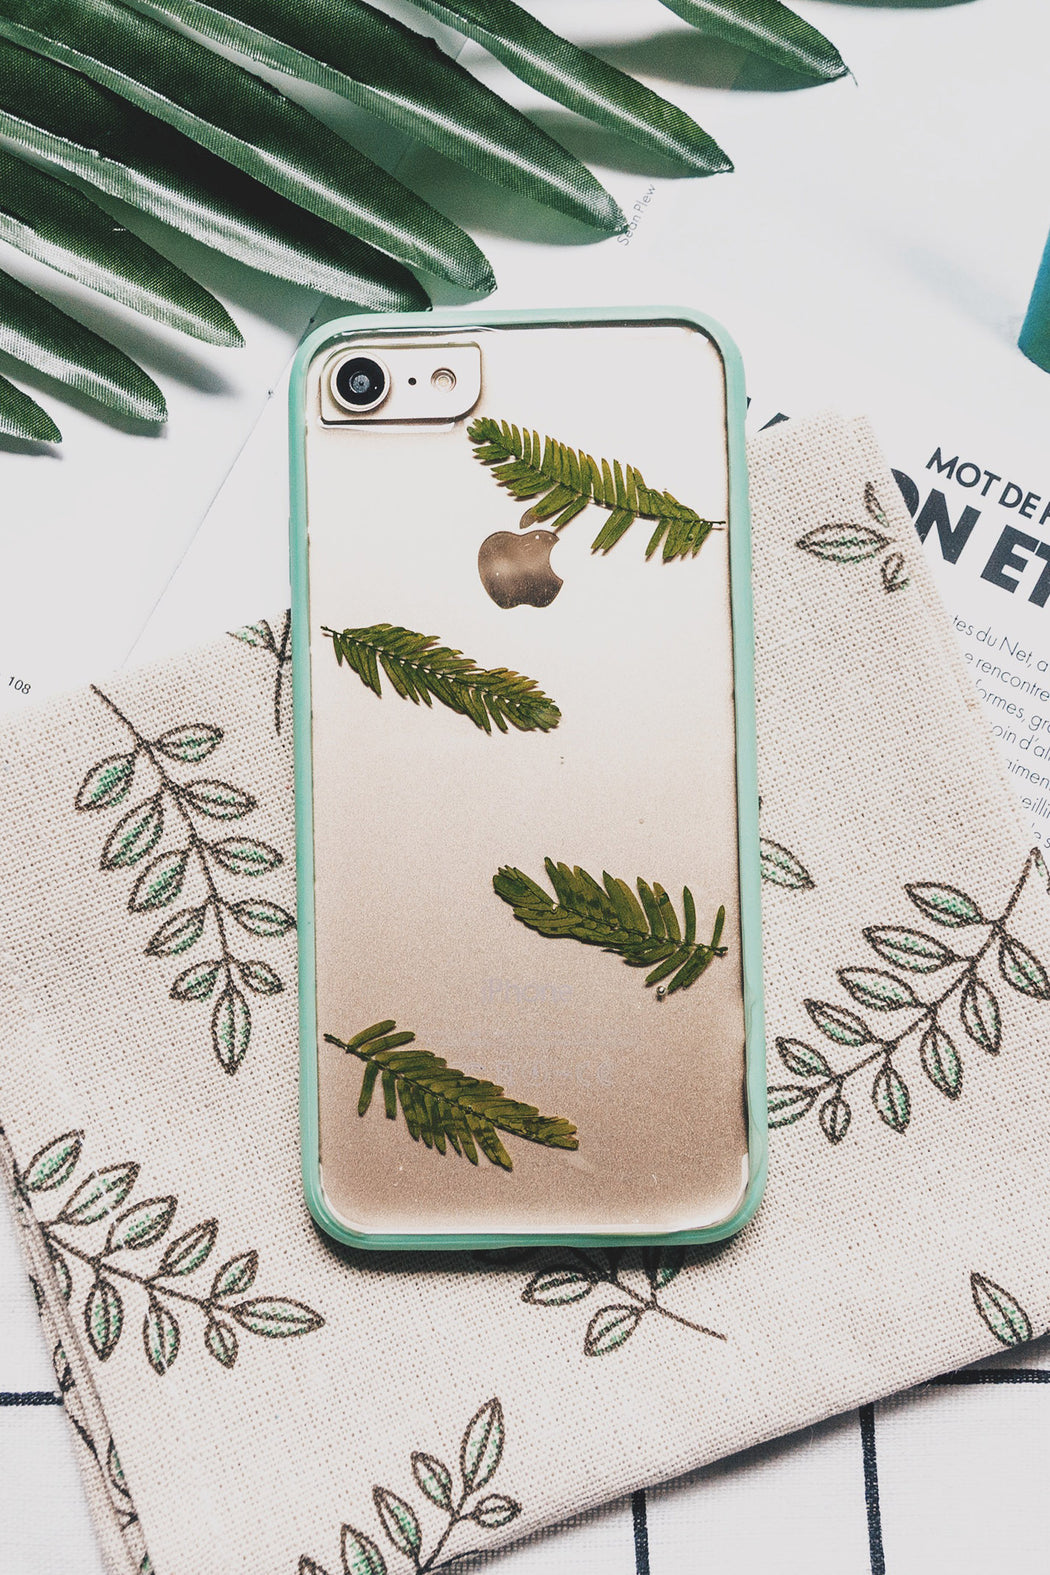 real_pressed_grean_fern_leaf_flower_cute_protective_anti_drop_bumper_iPhone_7_8_case_floral_neverland_floralfy